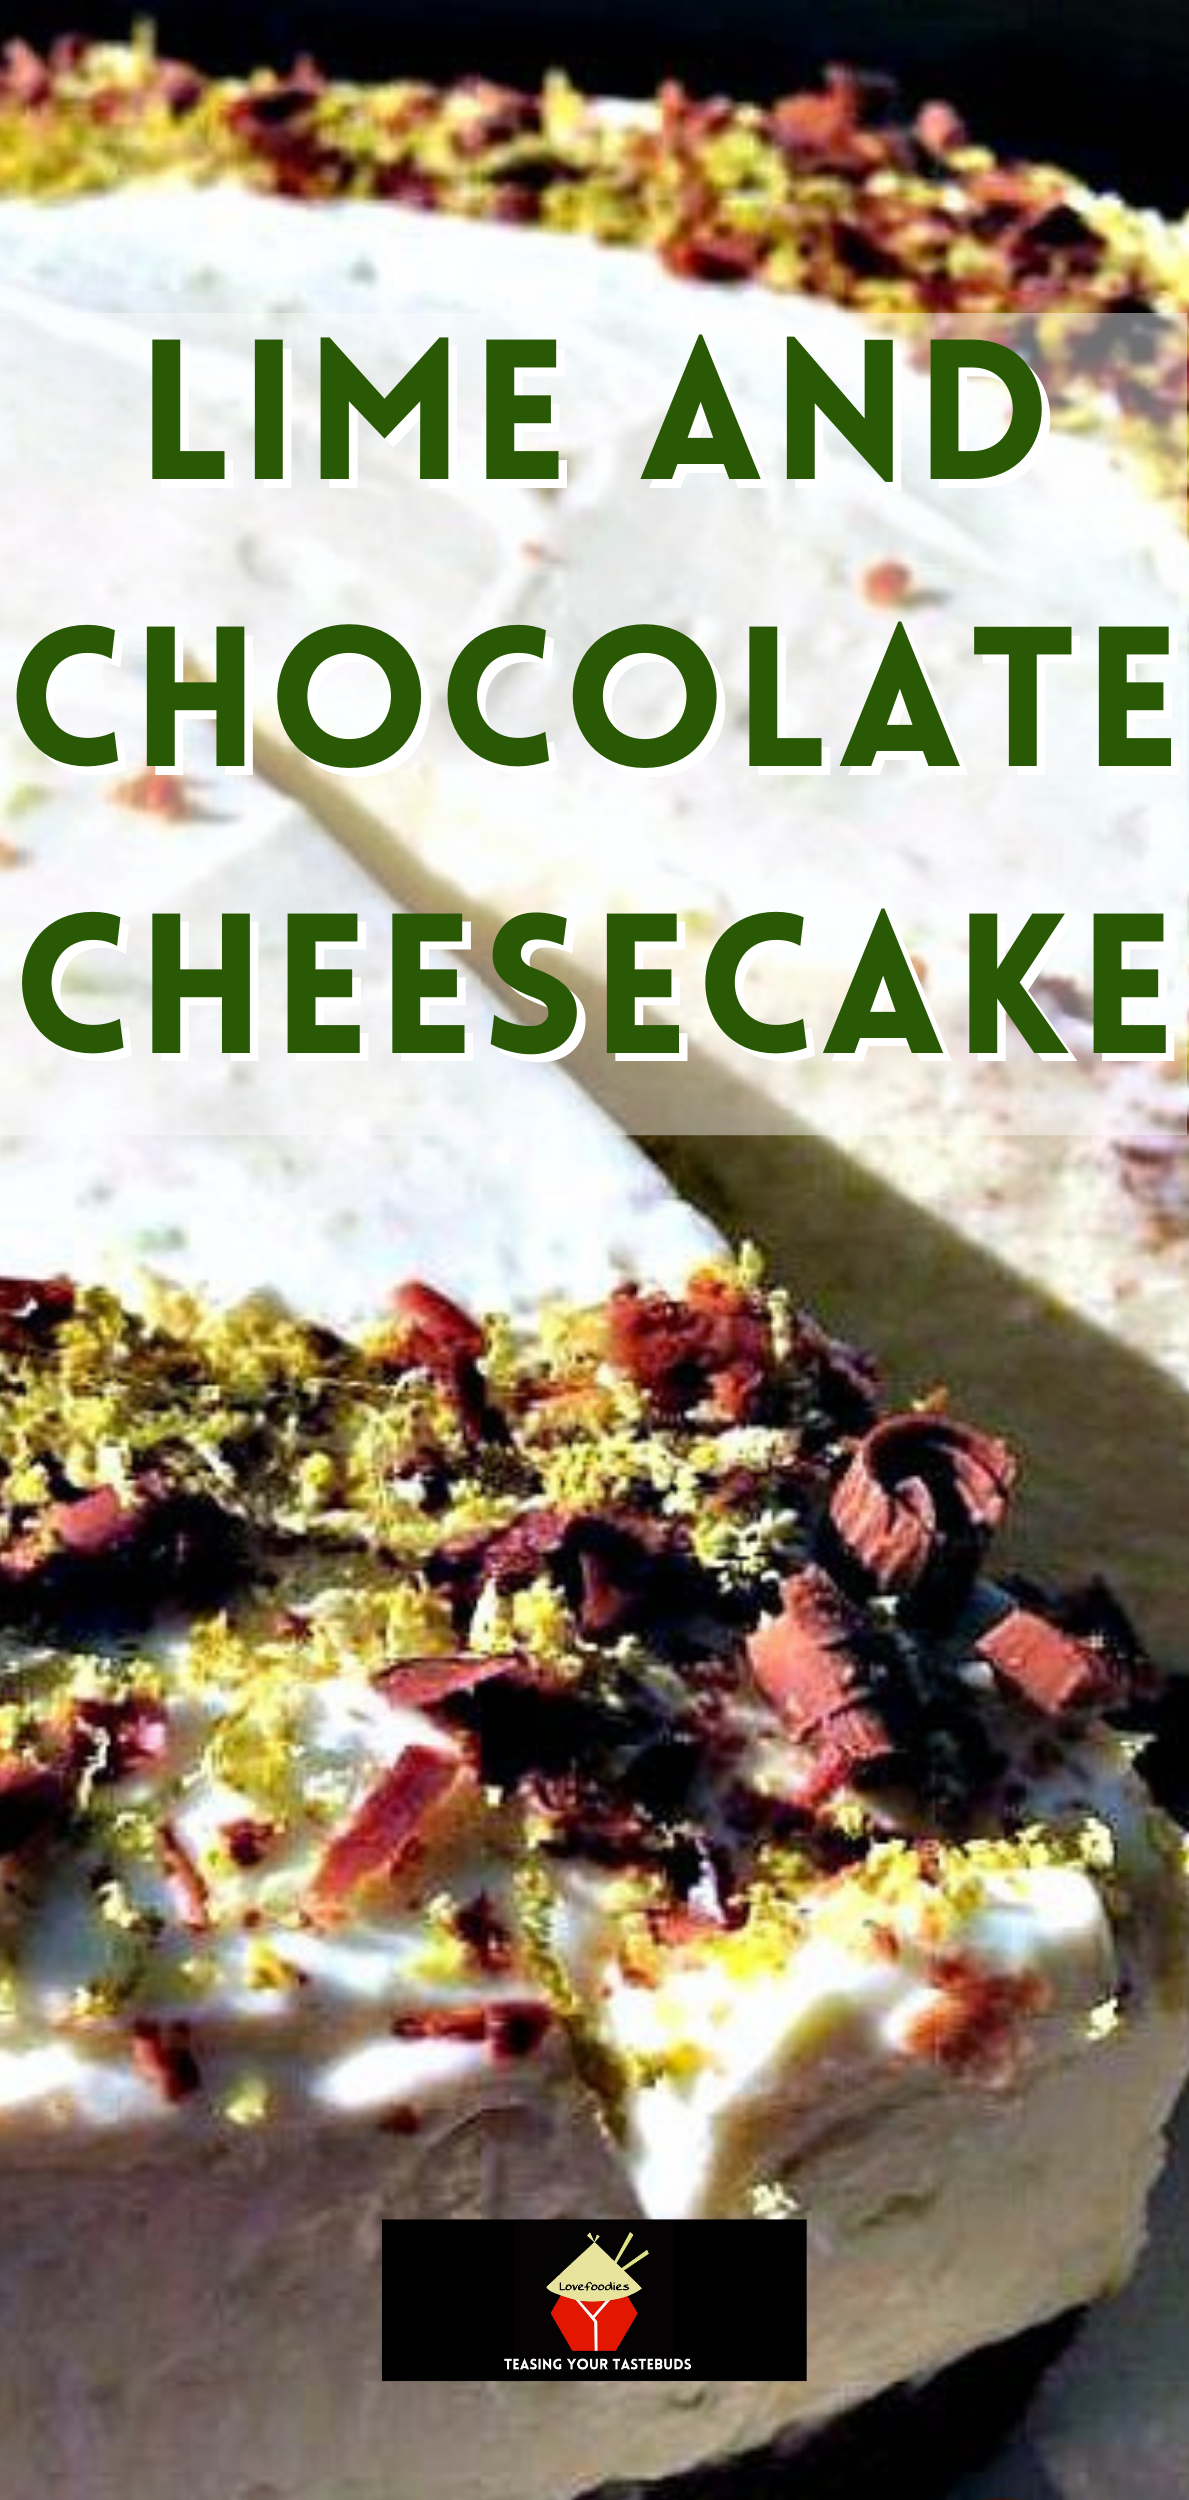 Lime and Chocolate Cheesecake. An easy No-Bake Cheesecake with zingy lime and chocolate running throughout a creamy cheesecake filling on a chocolate base. Delicious!